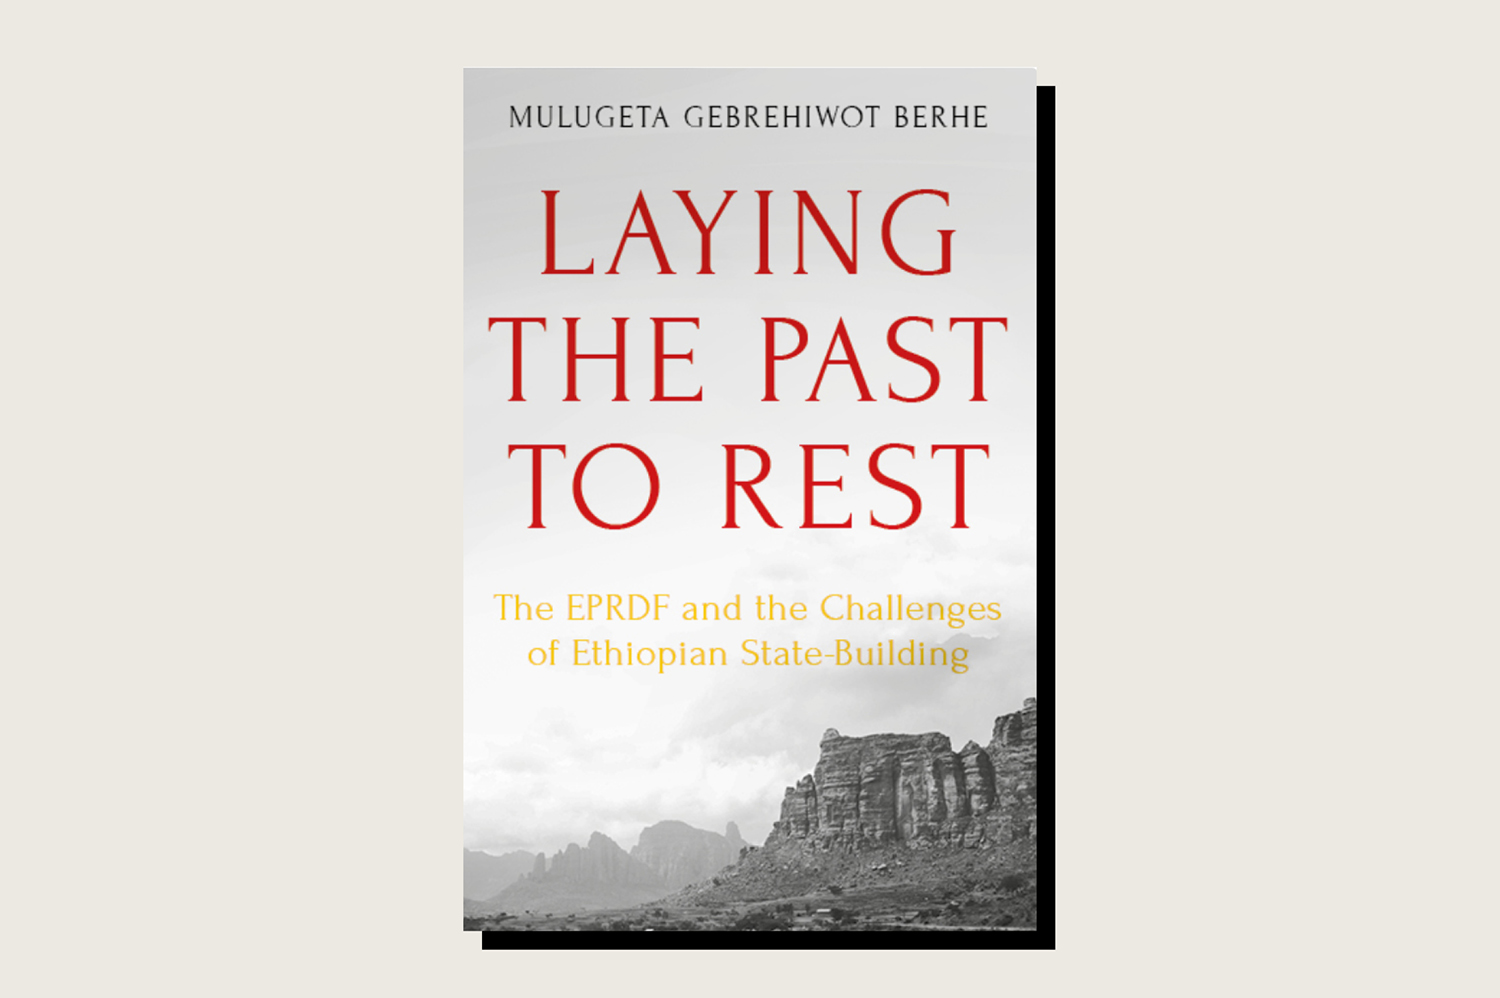 Laying the Past to Rest: The EPRDF and the Challenges of Ethiopian State-Building, Mulugeta Gebrehiwot Berhe, Hurst, 376 pp., , January 2020